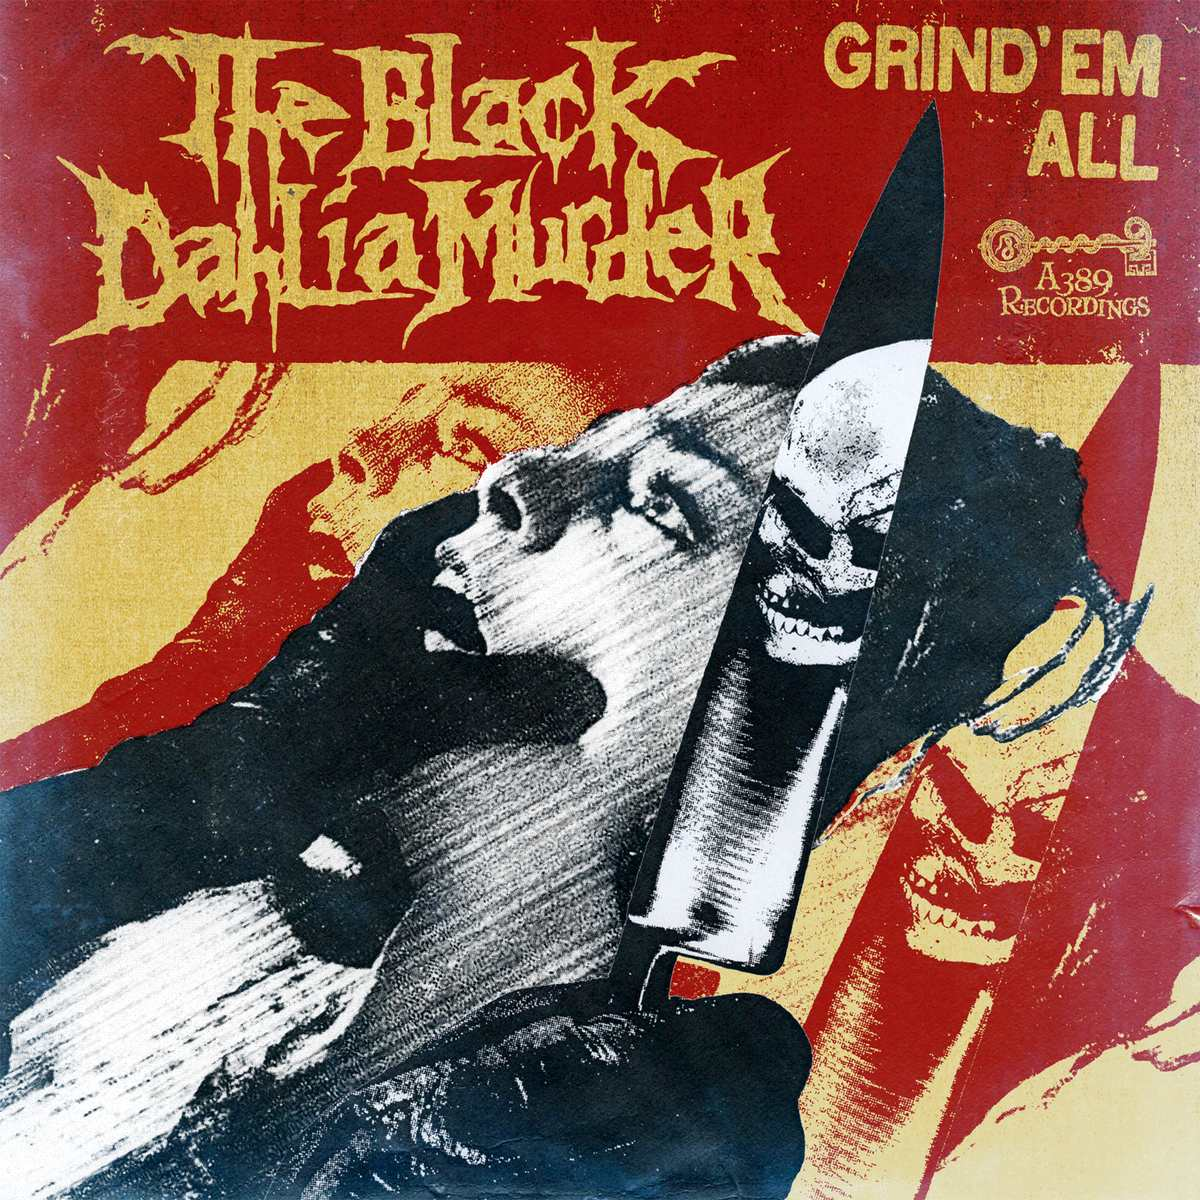 The Black Dahlia Murder - Grind 'Em All